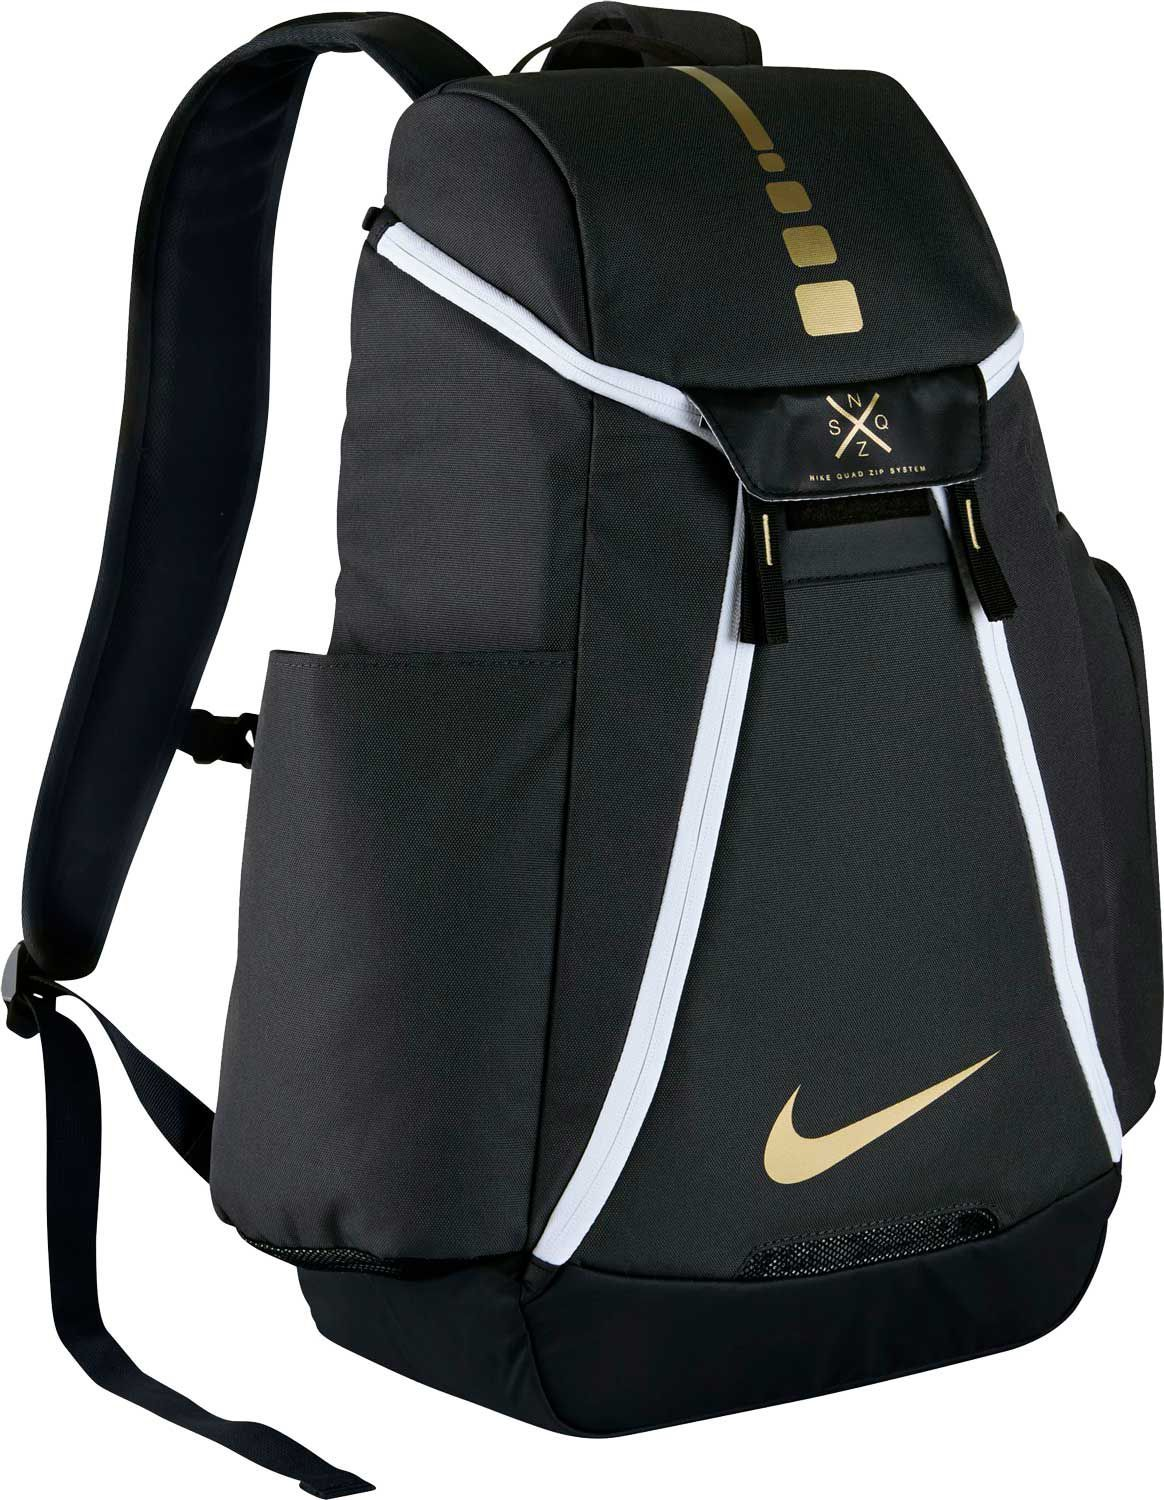 96233279f9f7 Nike Hoops Elite Max Air Team 2.0 Backpack